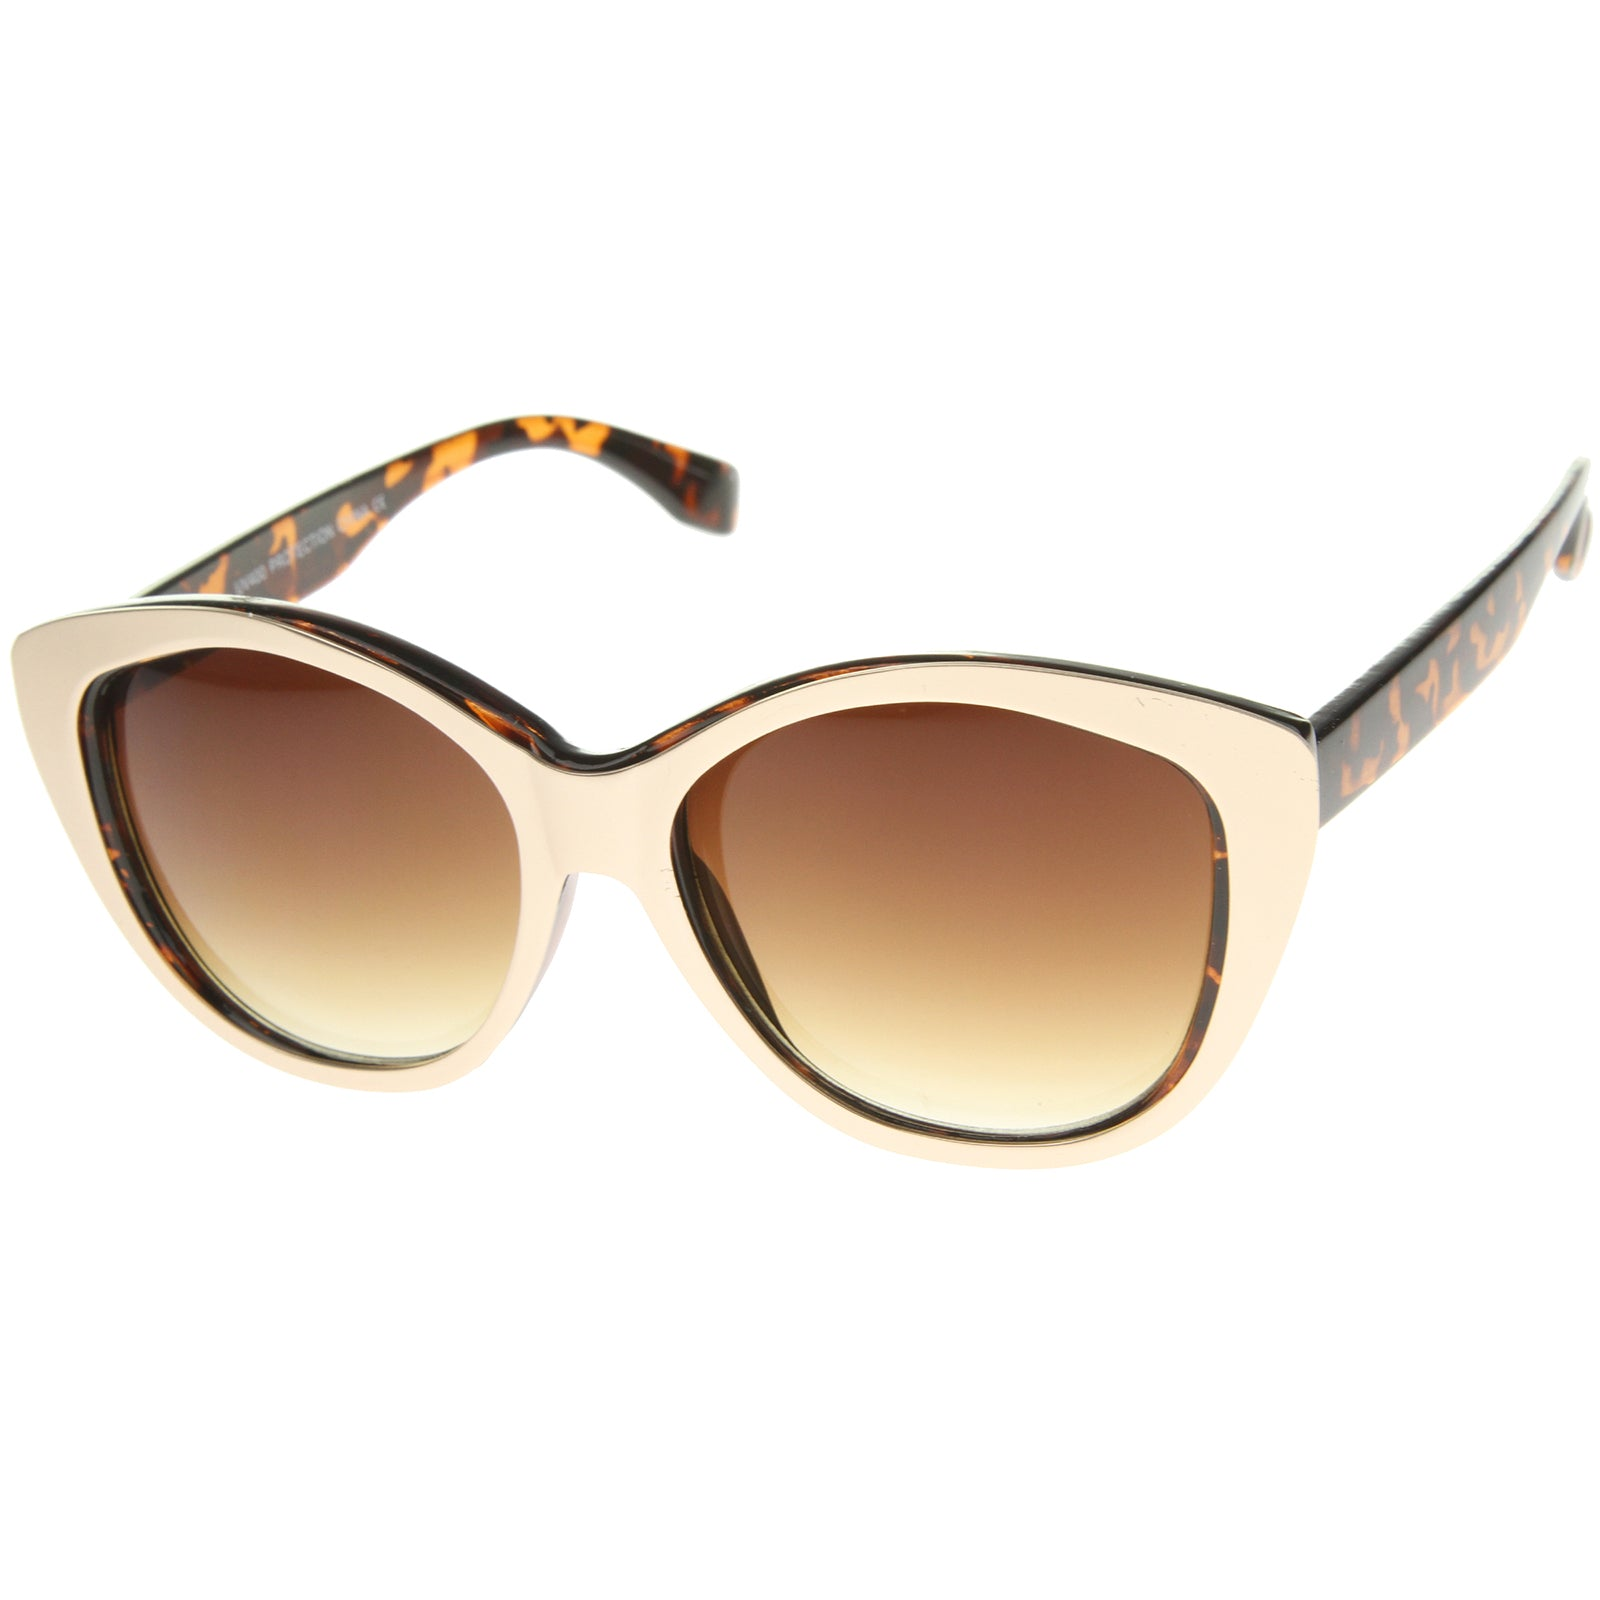 Women's High Fashion Two-Toned Tinted Lens Oversize Cat Eye Sunglasses 55mm - sunglass.la - 14